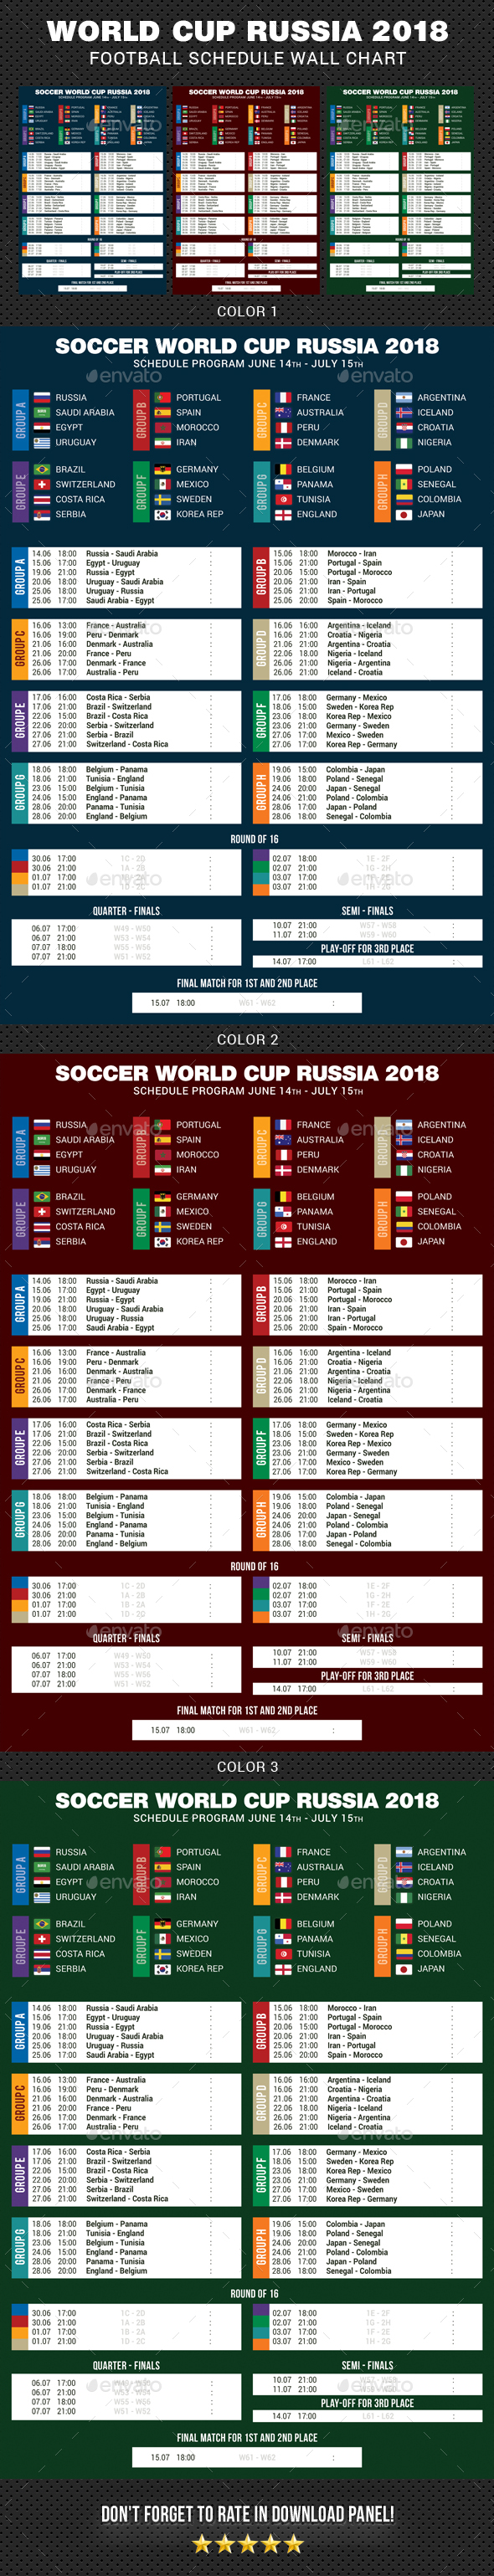 GraphicRiver Football Cup Russia 2018 Schedule 21110552